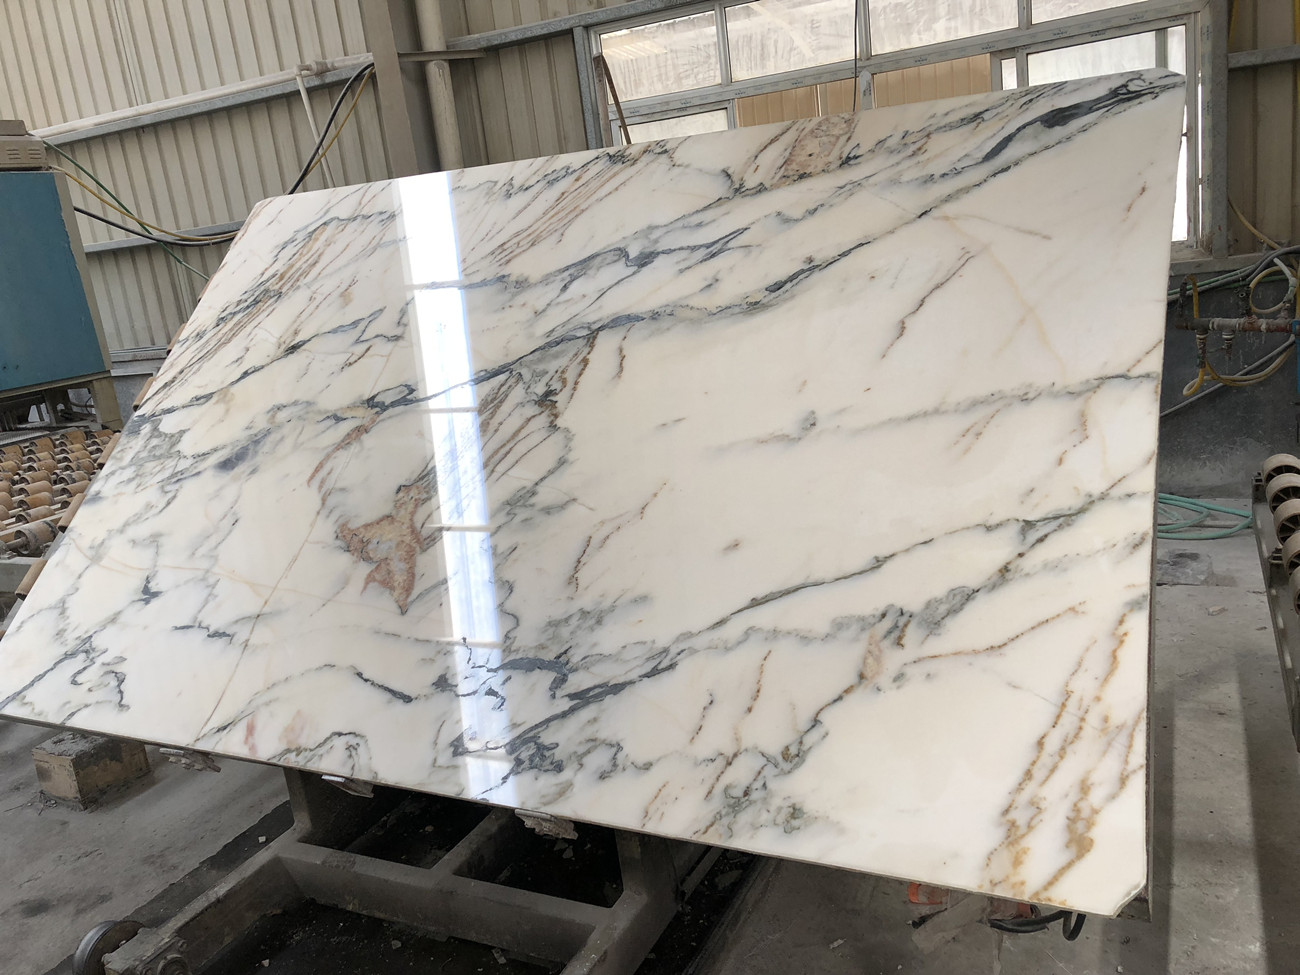 Asian Calacatta gold marble slabs